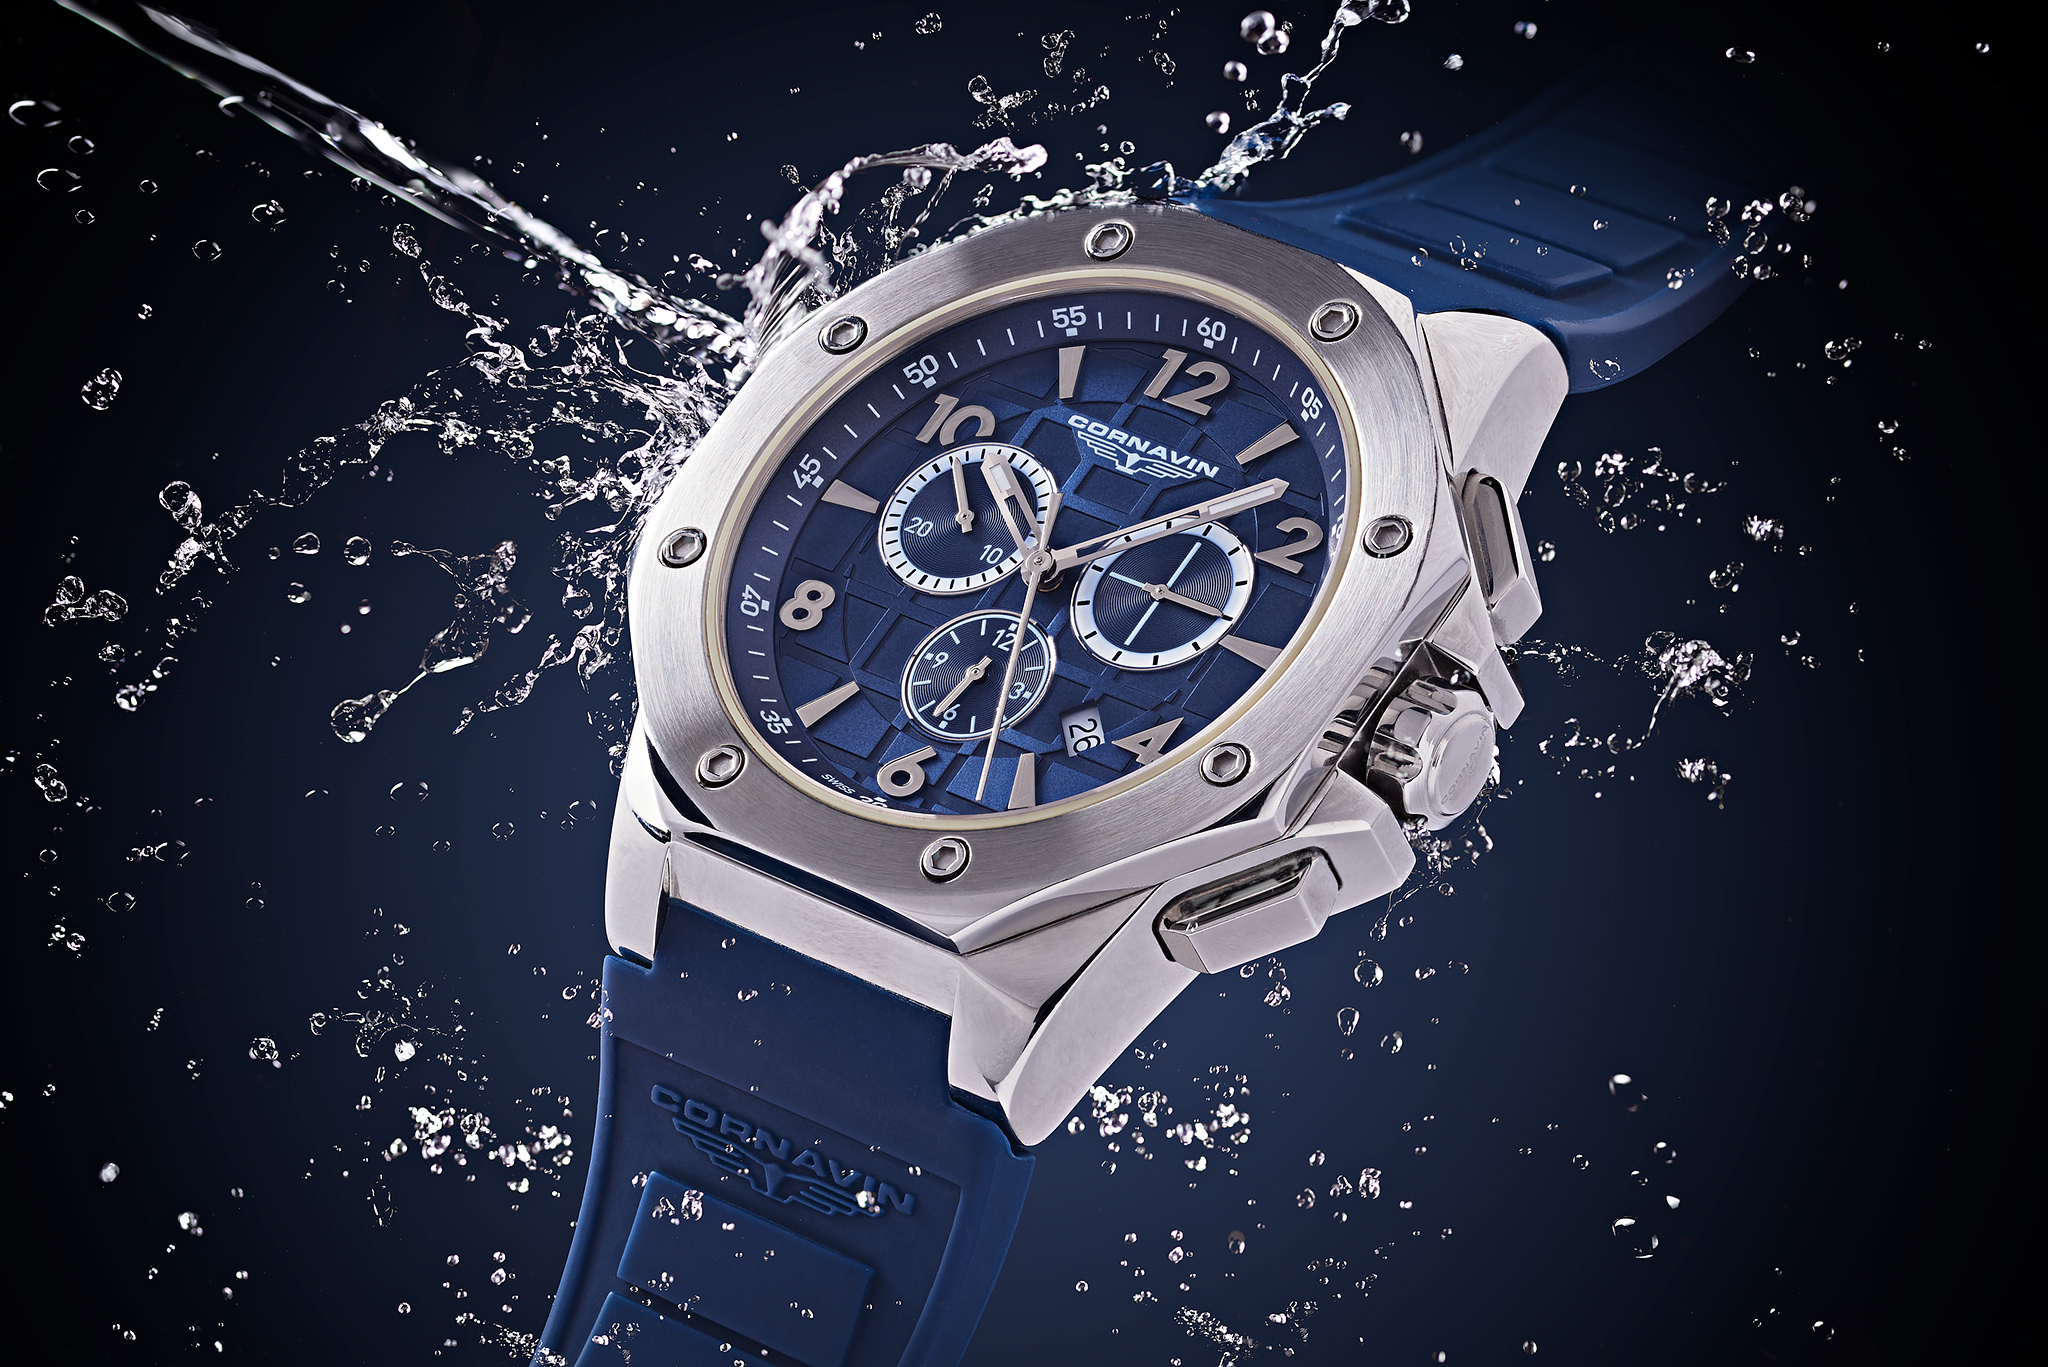 Cornavin watch with water splash (Personal work)